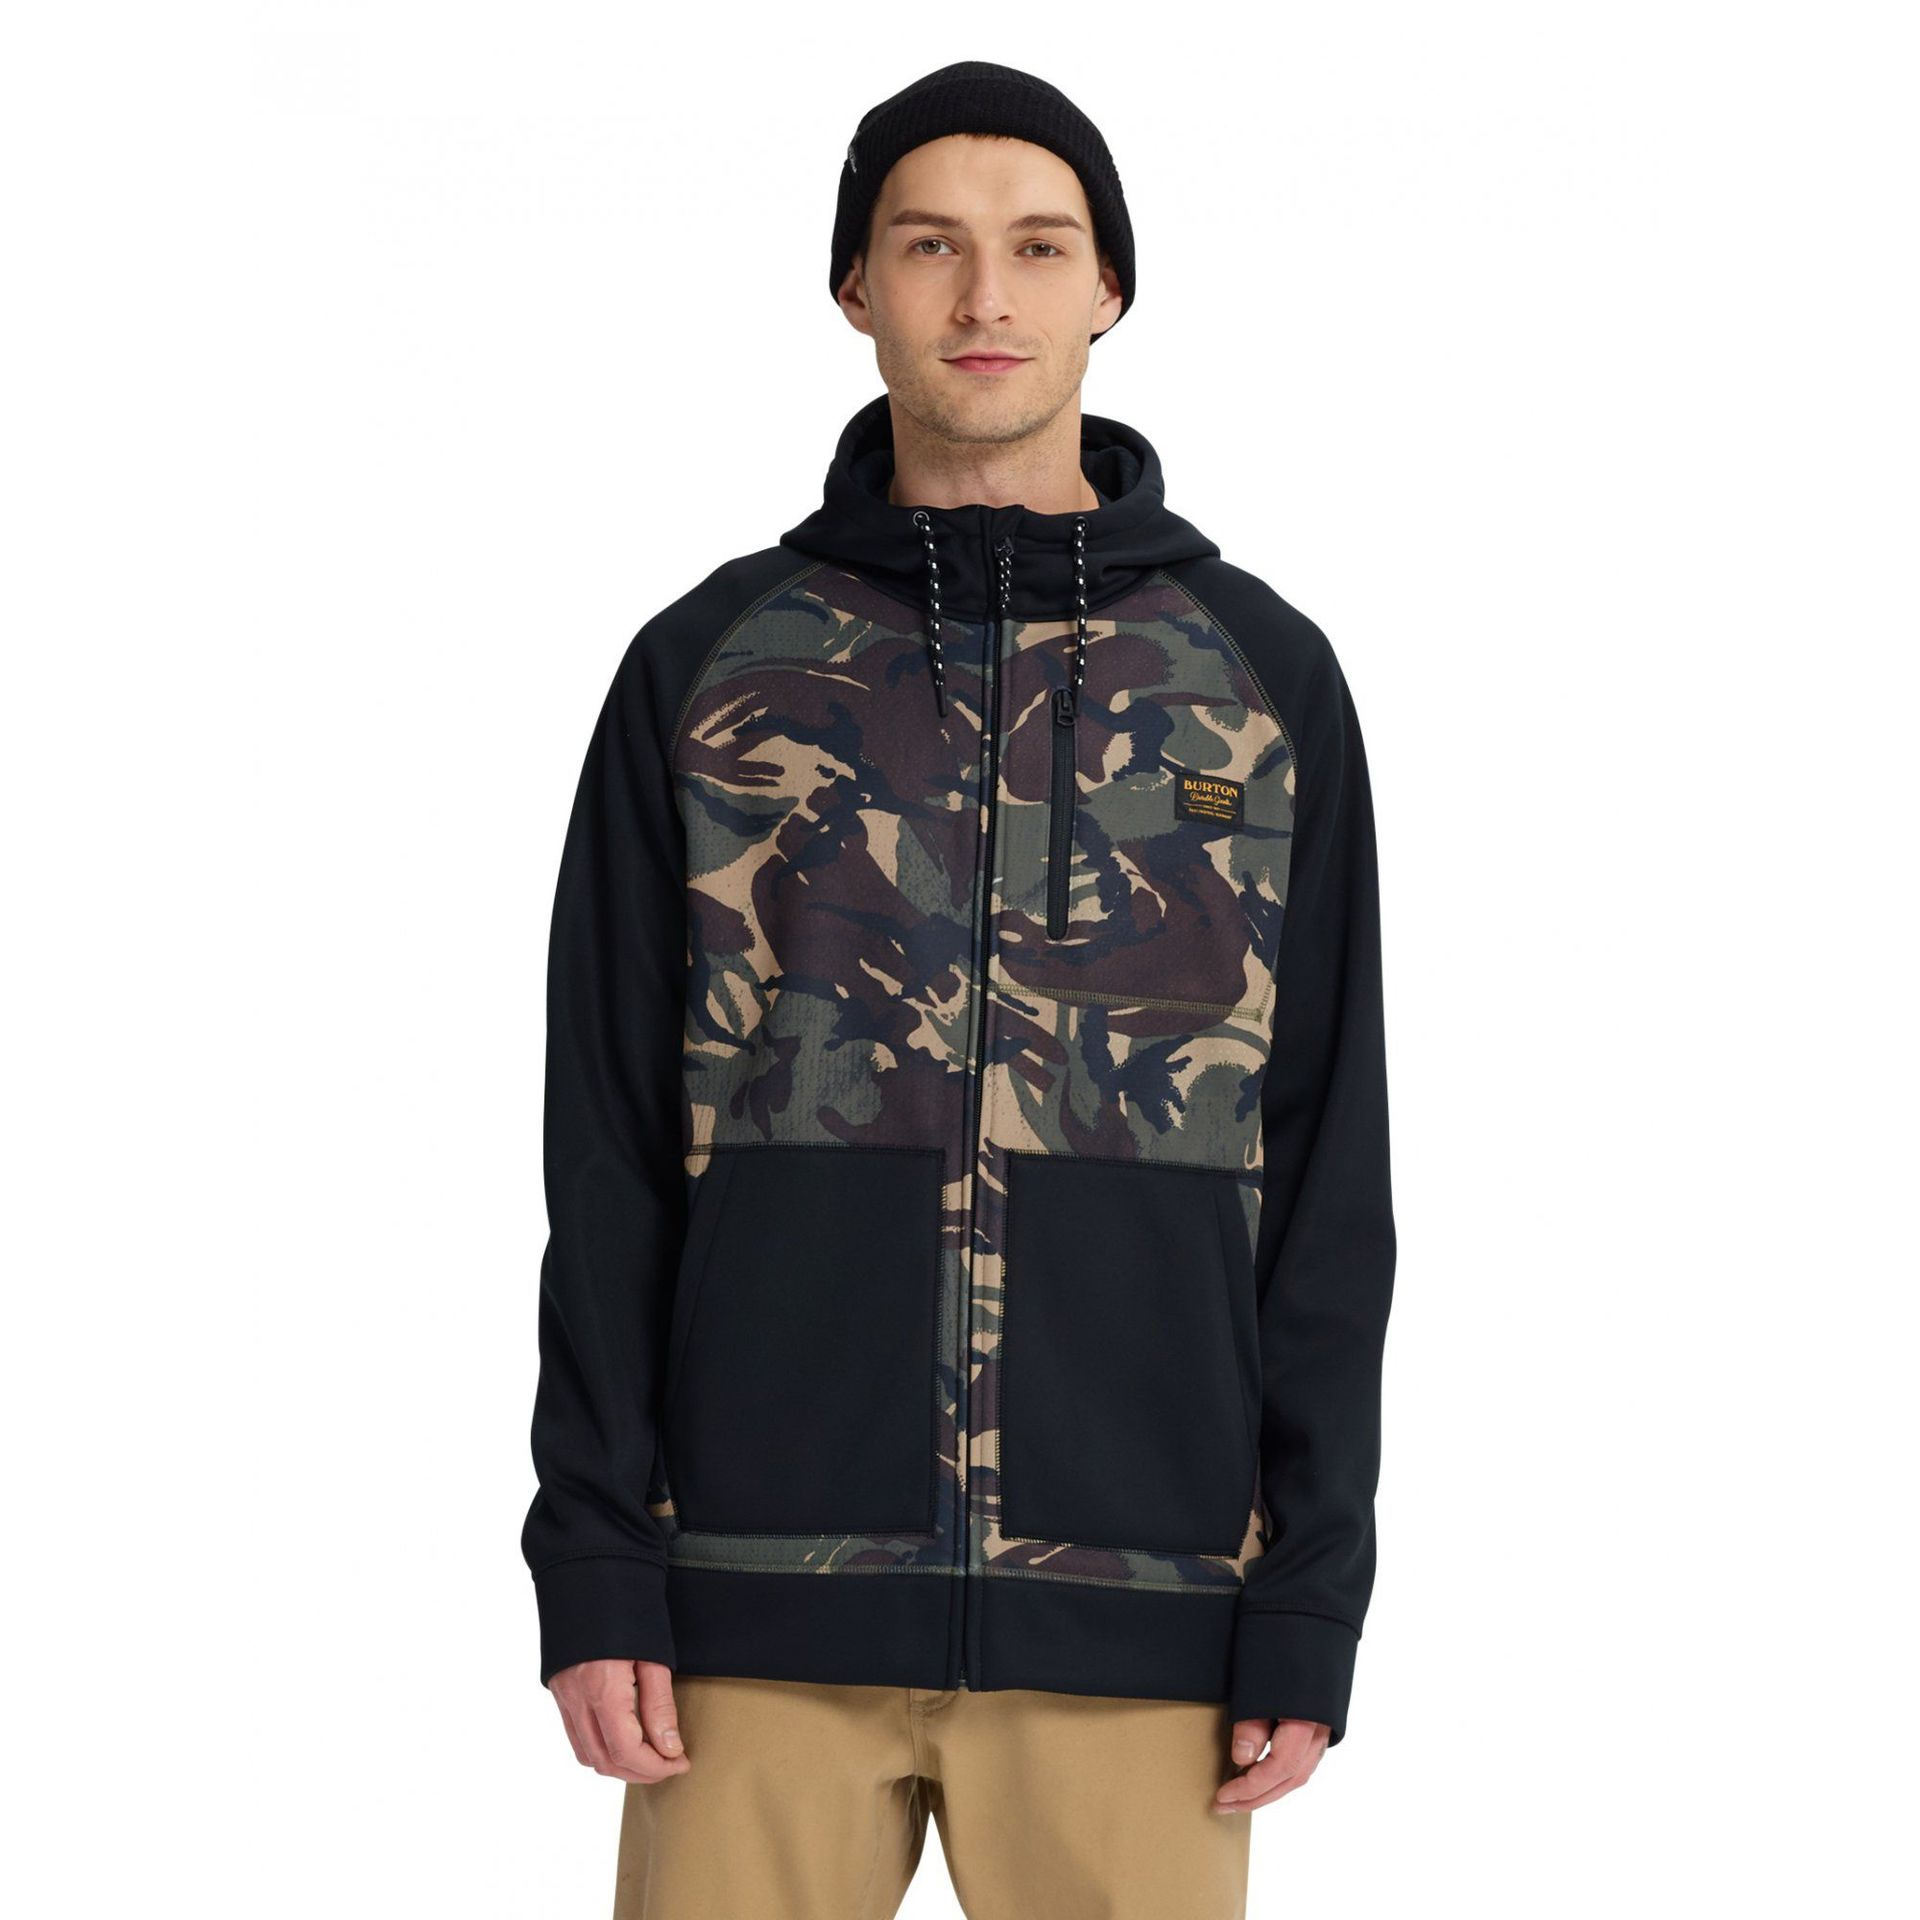 BLUZA BURTON CROWN BONDED FZ SEERSUCKER CAMO|TRUE BLACK 165381-300 1